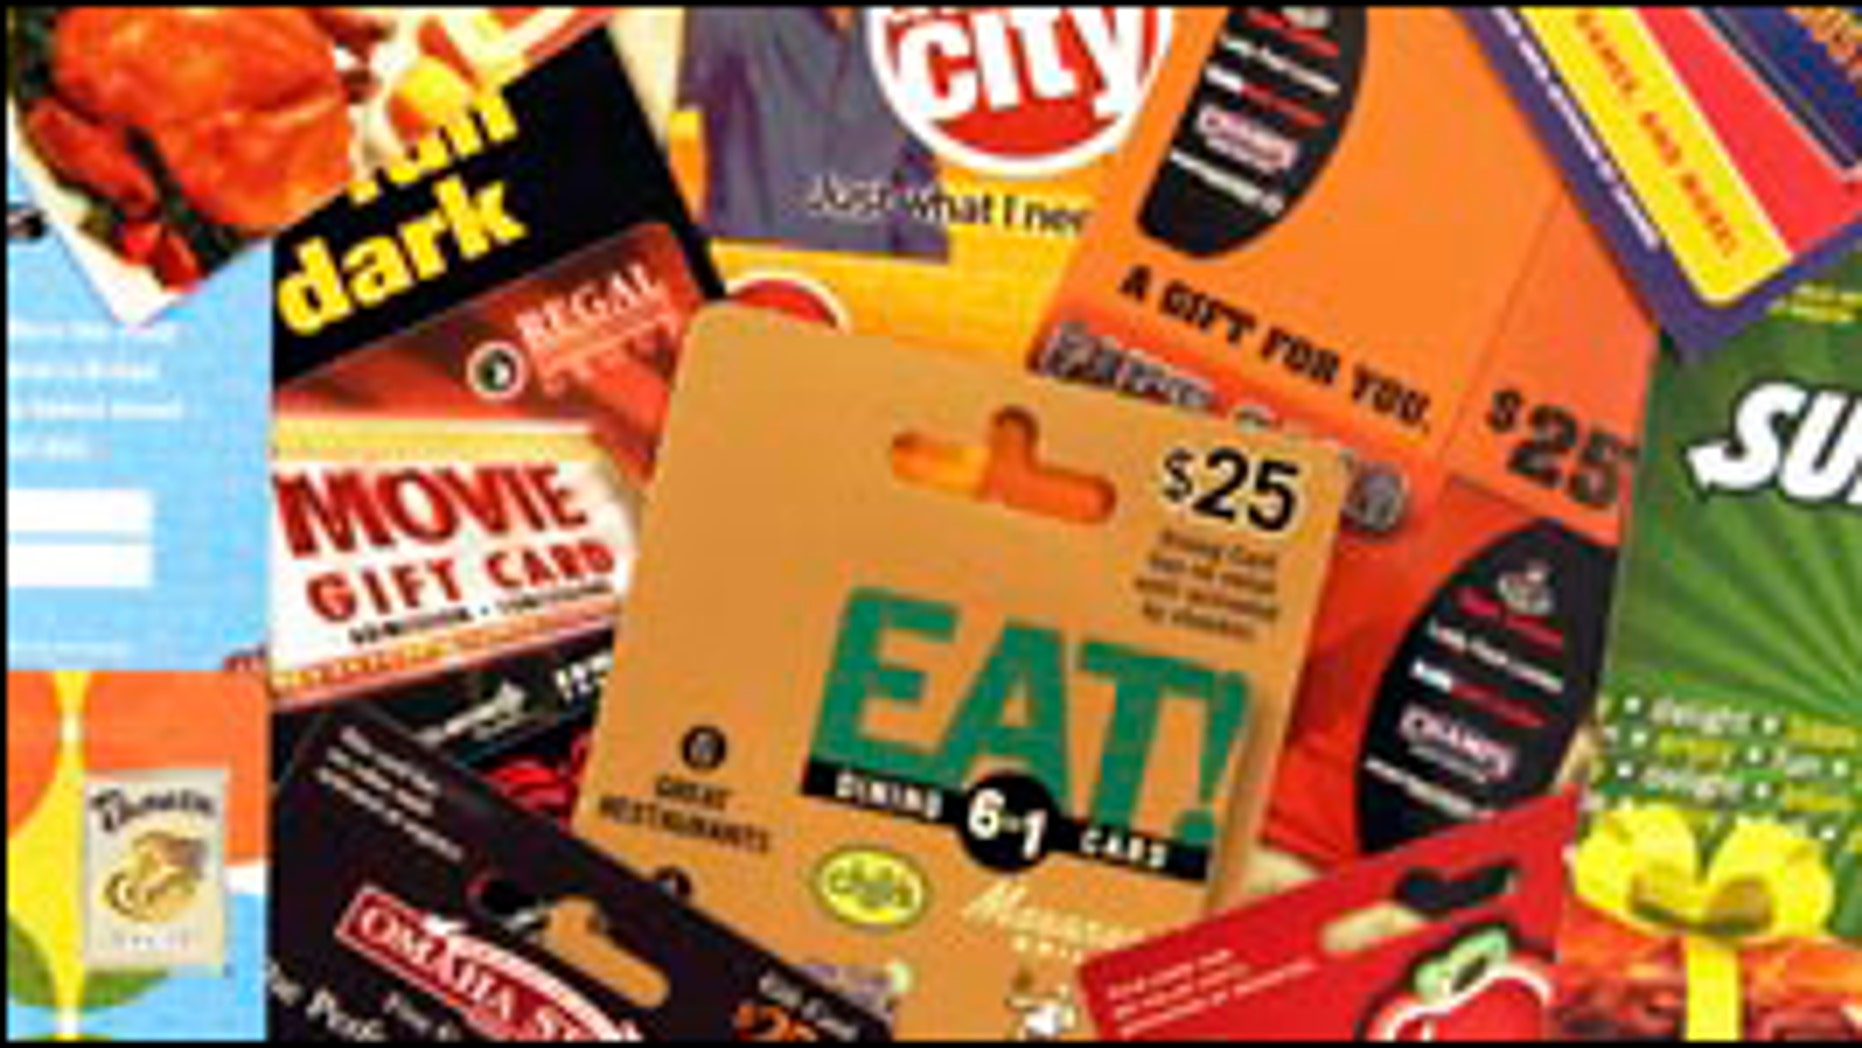 ** FILE ** A variety of gift cards for use at various stores and restaurants are seen at a convenience store in Brunswick, Maine, in this Dec. 12, 2007 file photo. The state of Maine wants its share of gift cards that go unused, and State Treasurer David Lemoine is asking the attorney general to look into what the state can do to enforce the new law. So far, out-of-state retailers have either refused to pay or have challenged the legality of the law.  (AP Photo/Pat Wellenbach, file)